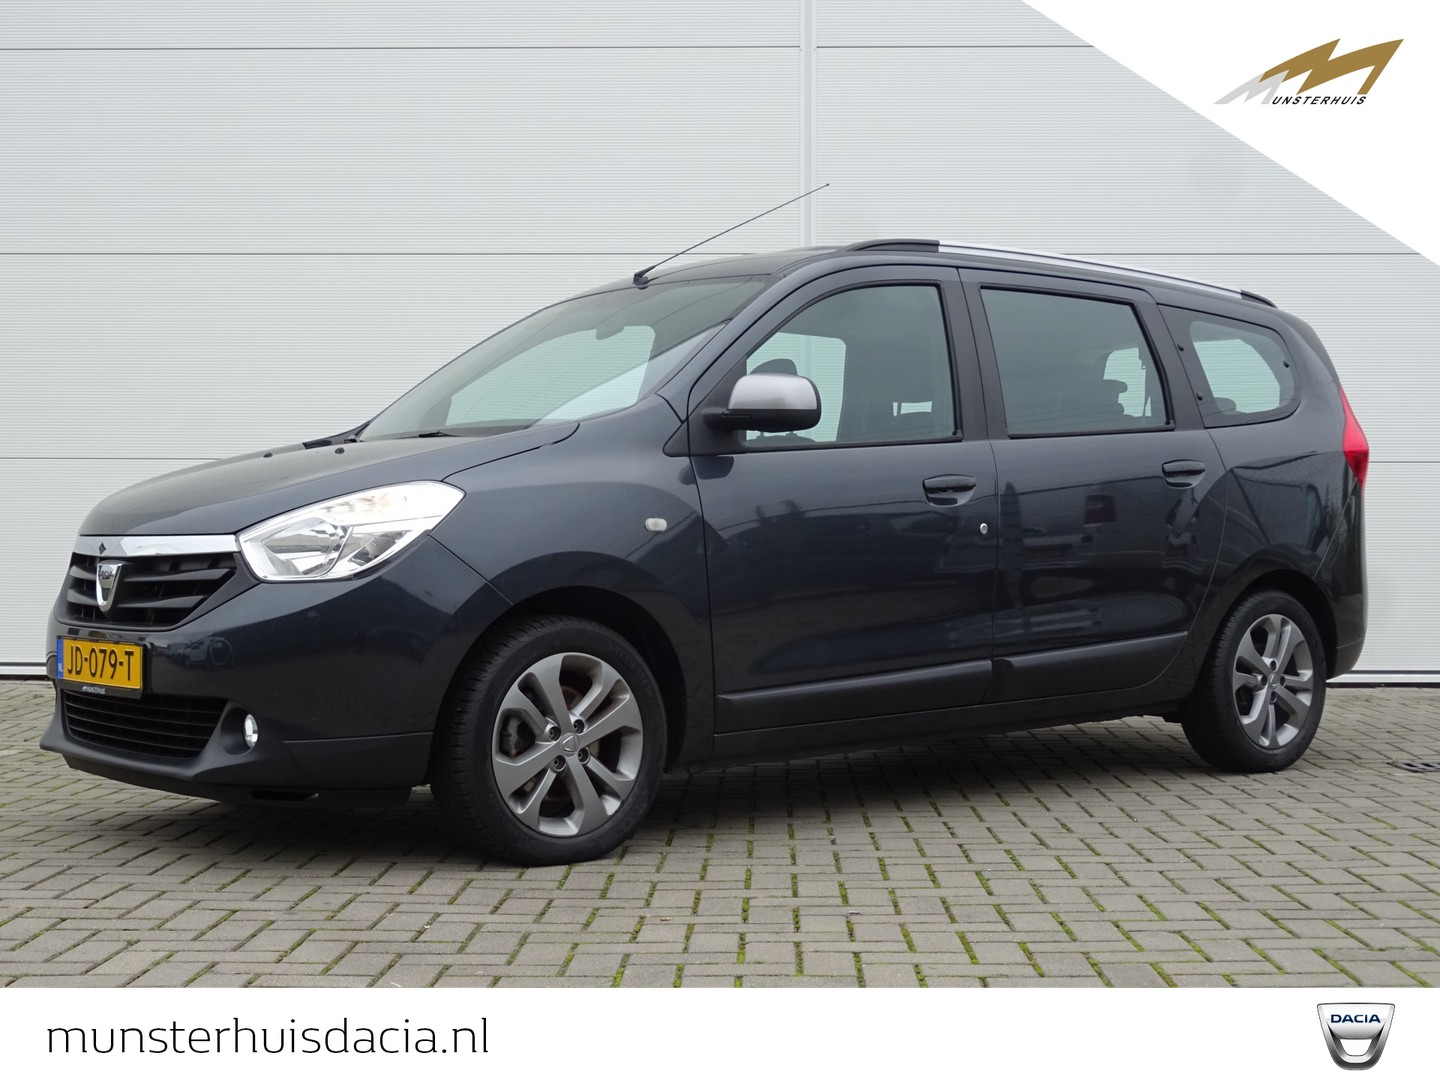 Dacia Lodgy Tce 115 s&s 10th anniversary - 7 persoons